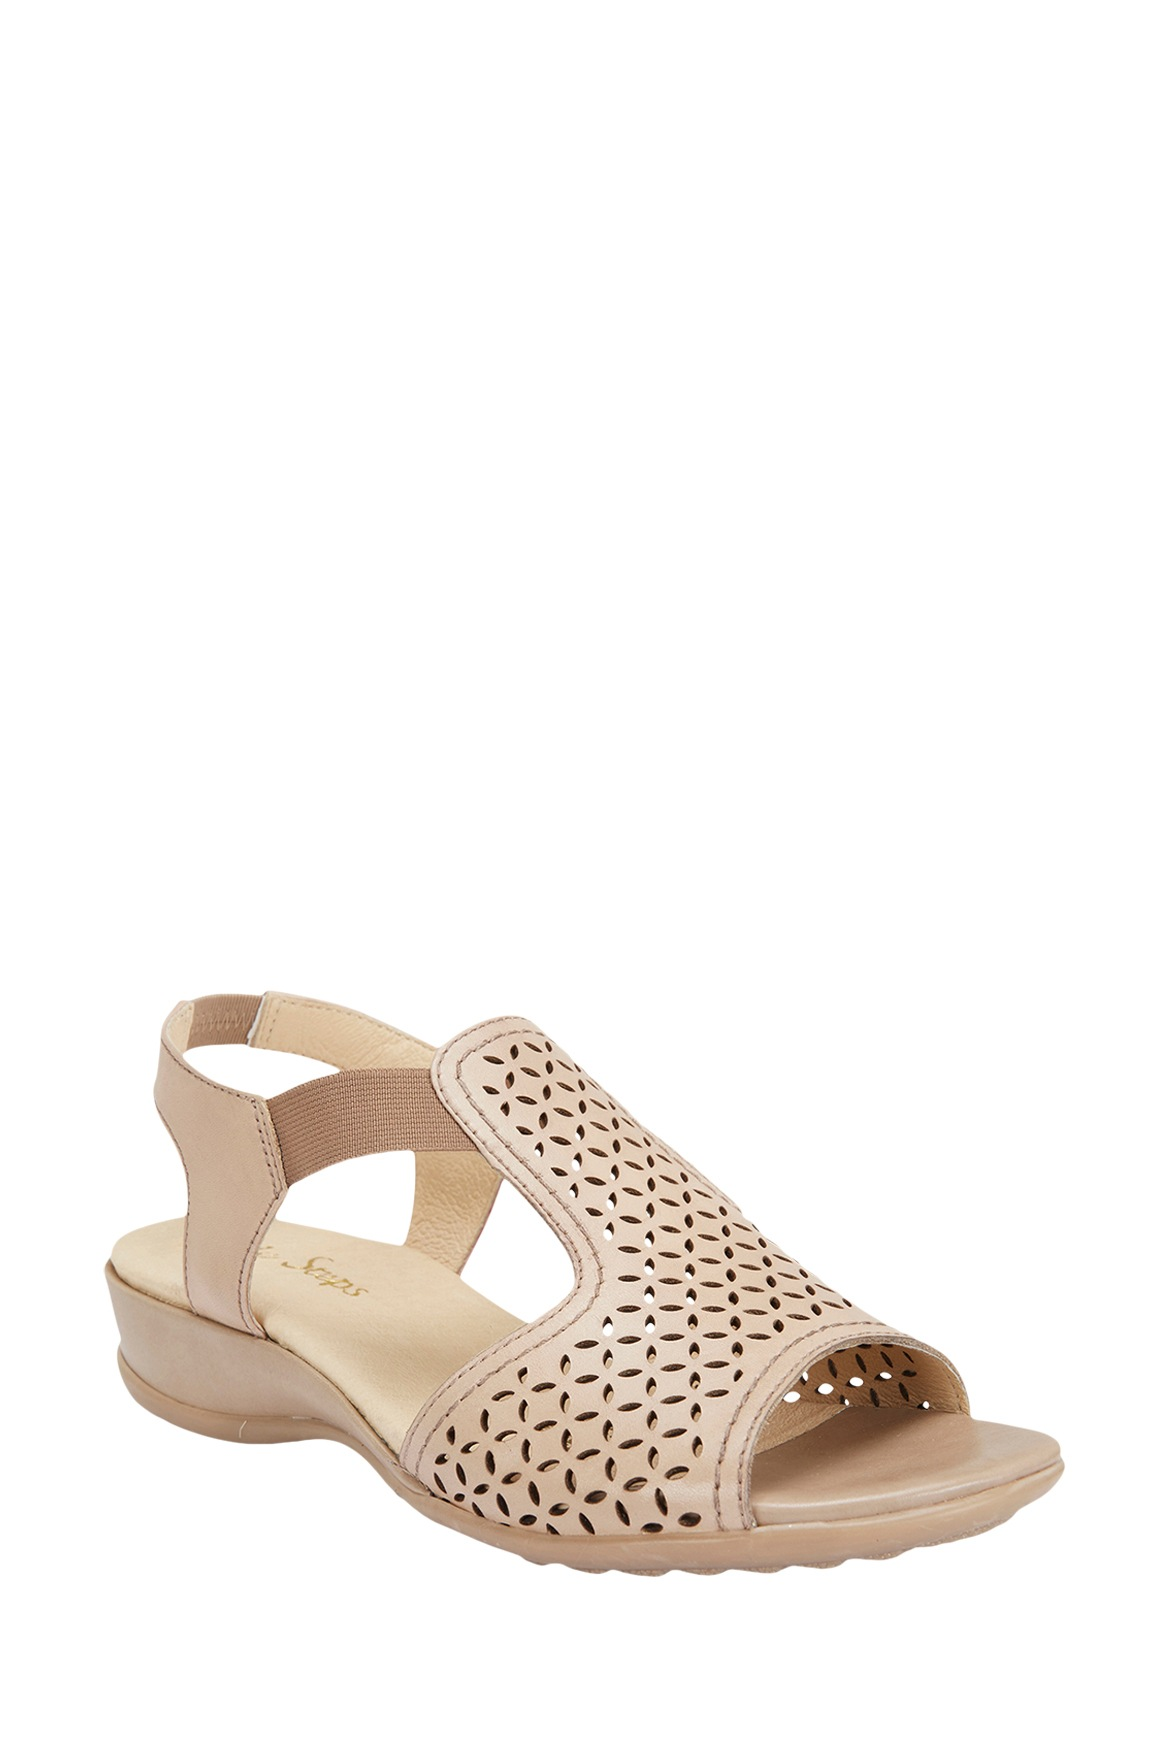 wide steps chion neutral glove sandal myer